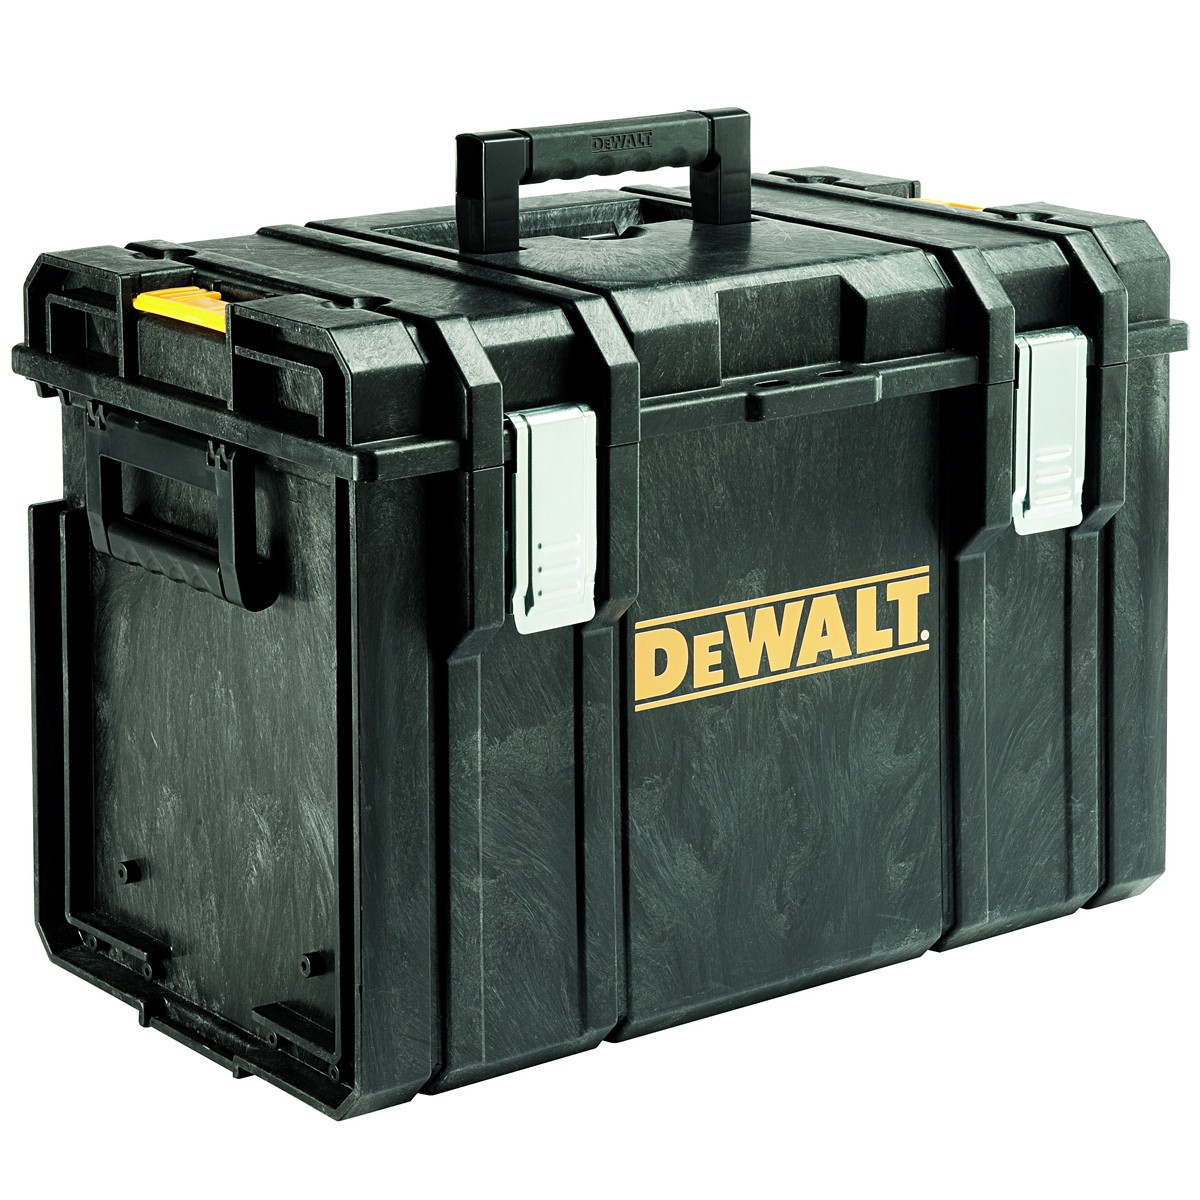 DeWalt 1-70-323 DS400 TOUGHSYSTEM Tool Box inc Tote Tray